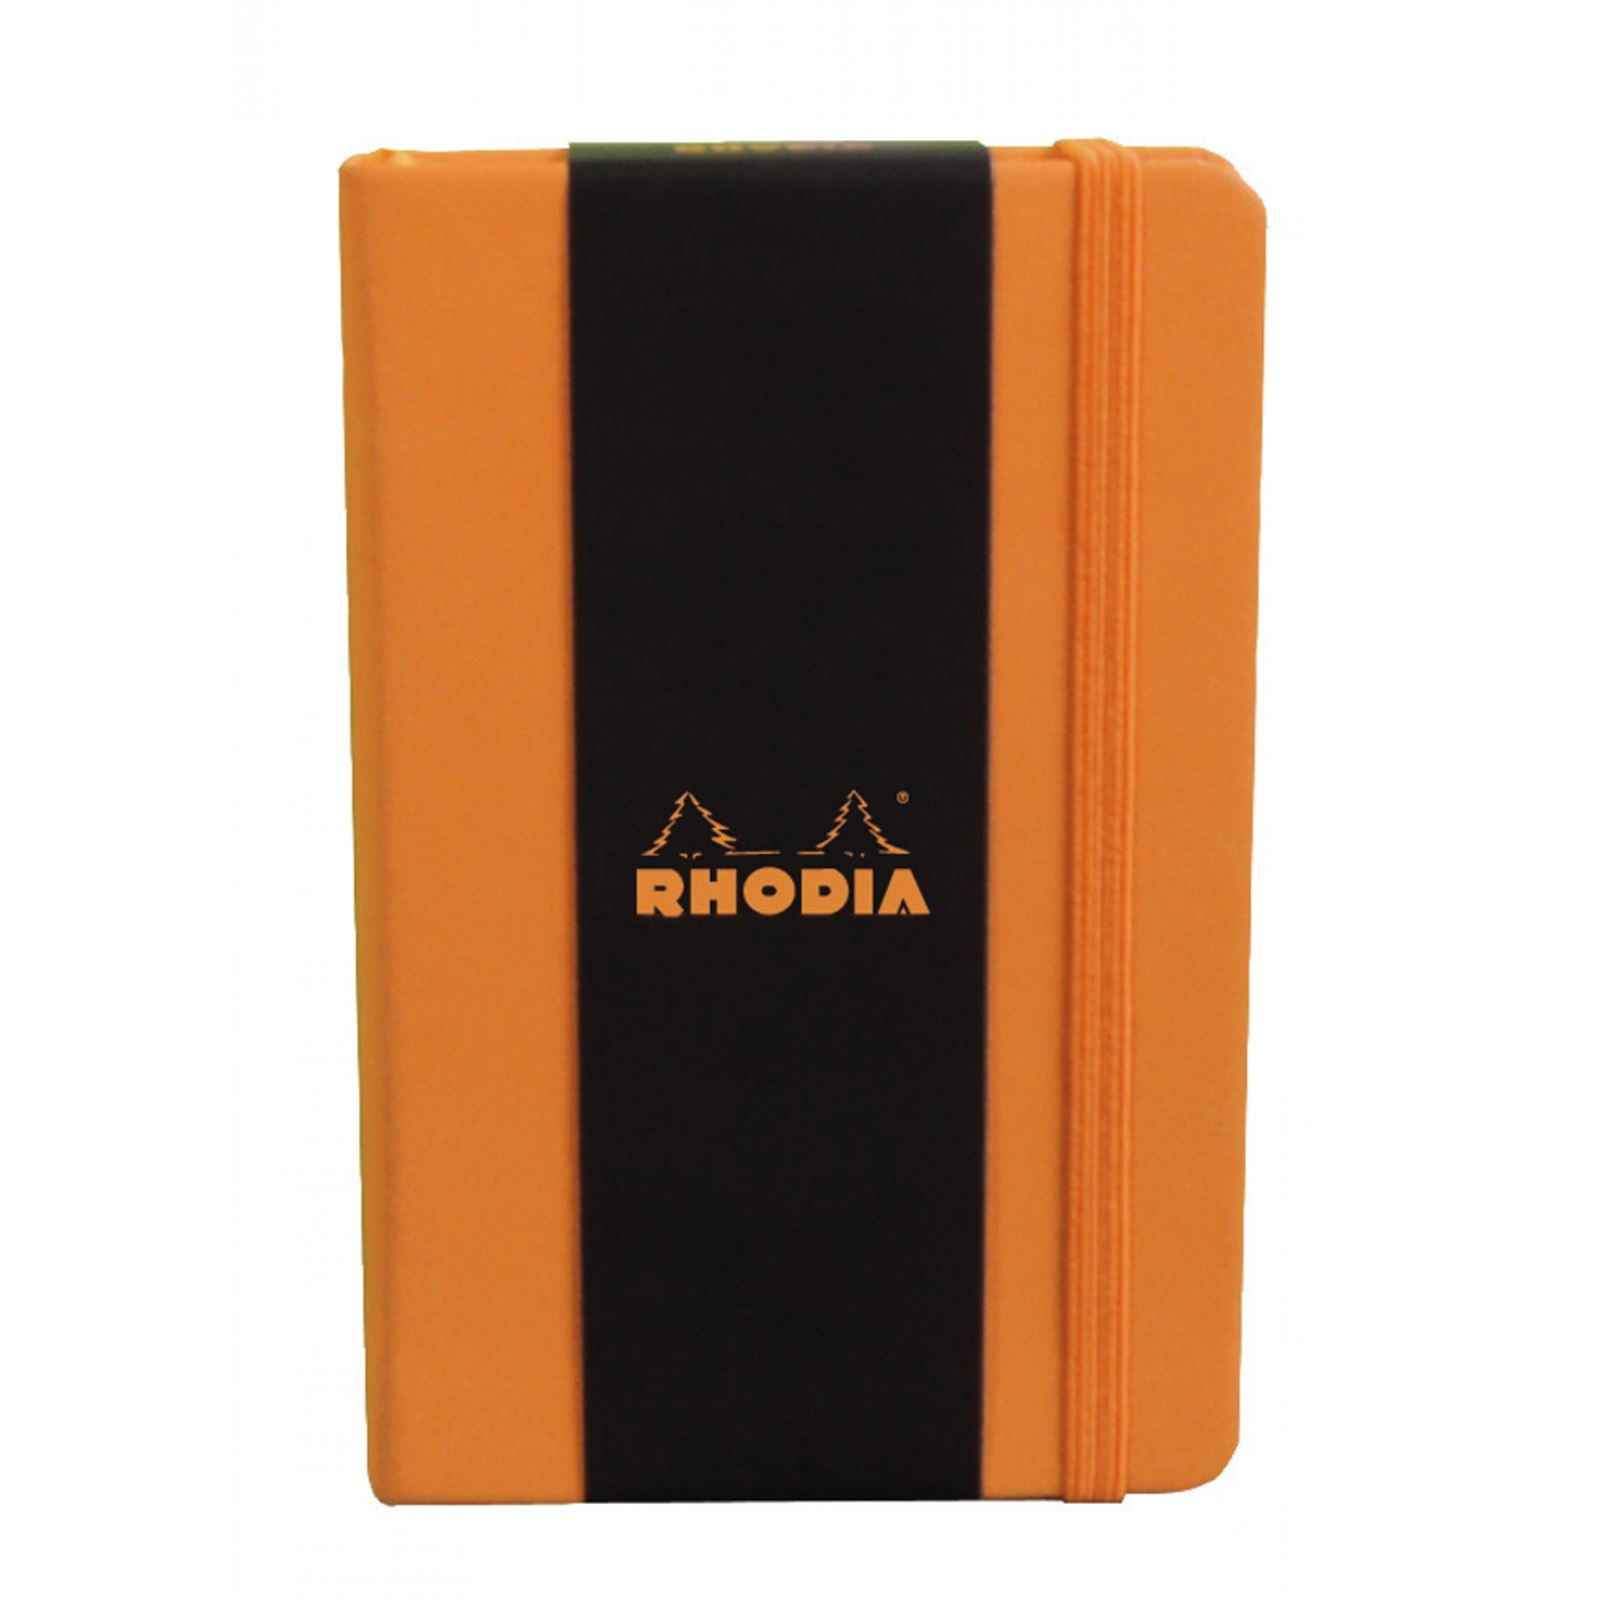 Rhodia A4 A5 A6 Lined Paper Notebook Journal Faux Leather